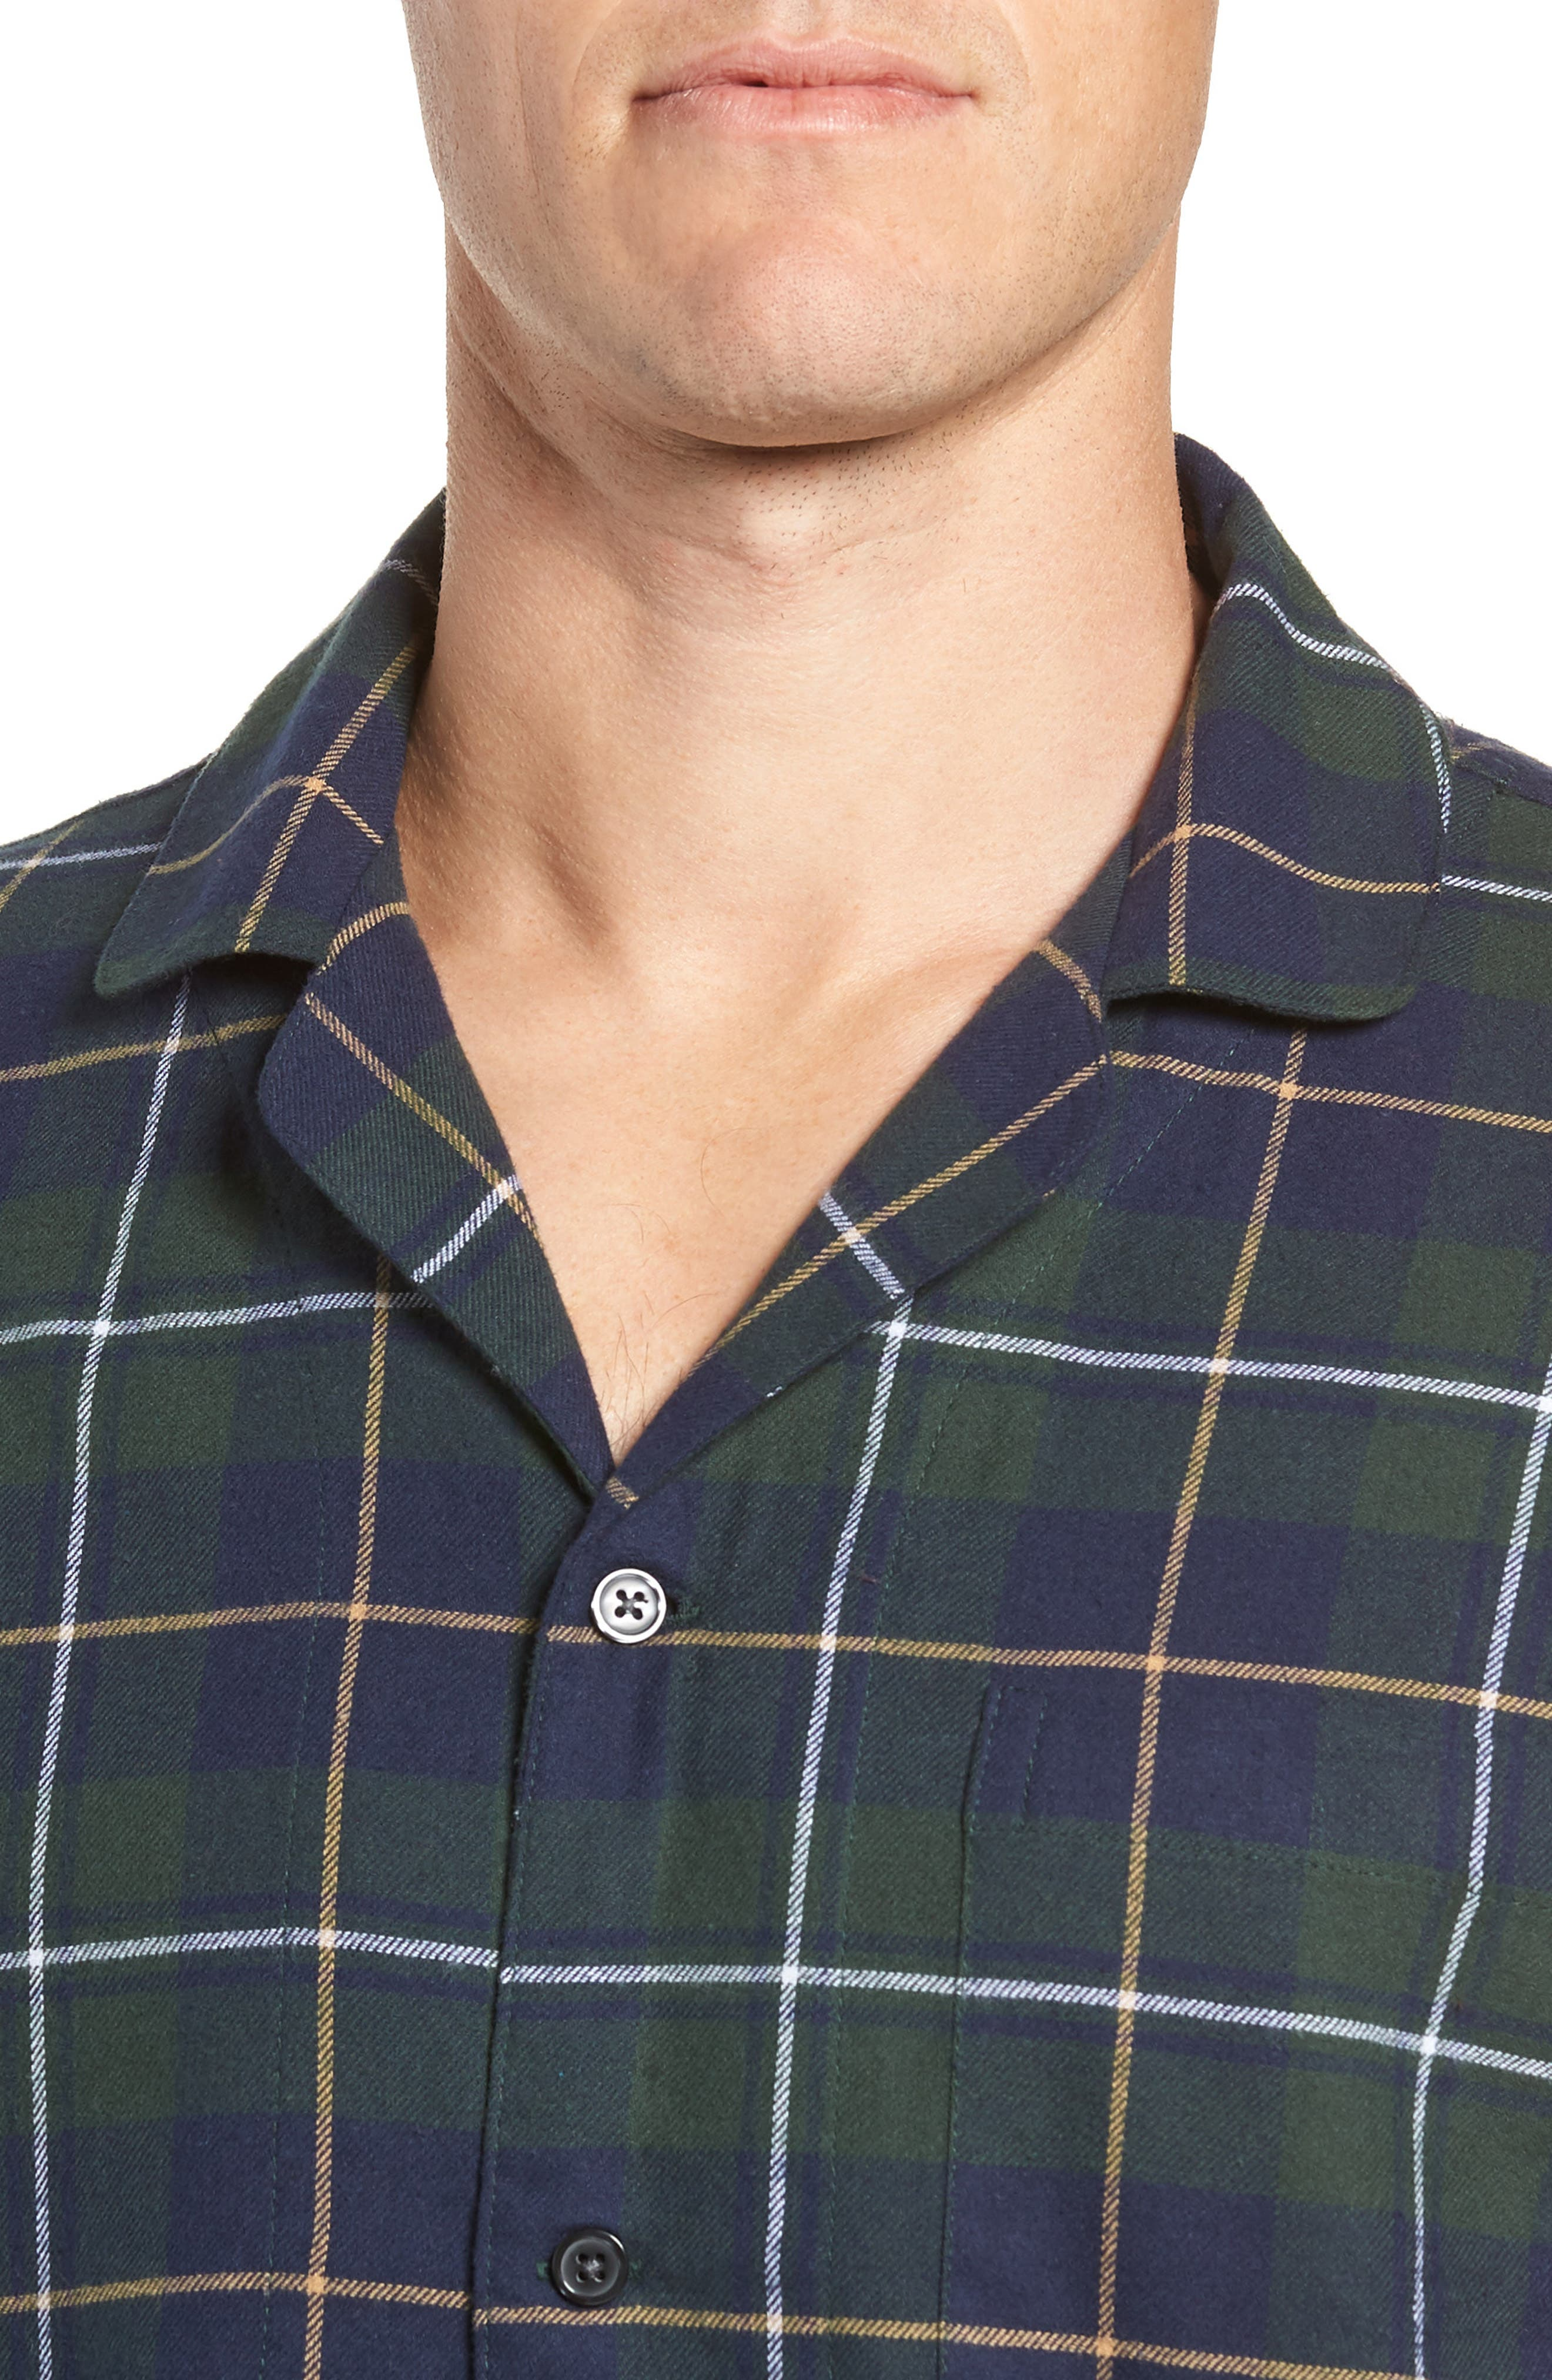 '824' Flannel Pajama Set,                             Alternate thumbnail 4, color,                             GREEN CHARCOAL FADED PLAID